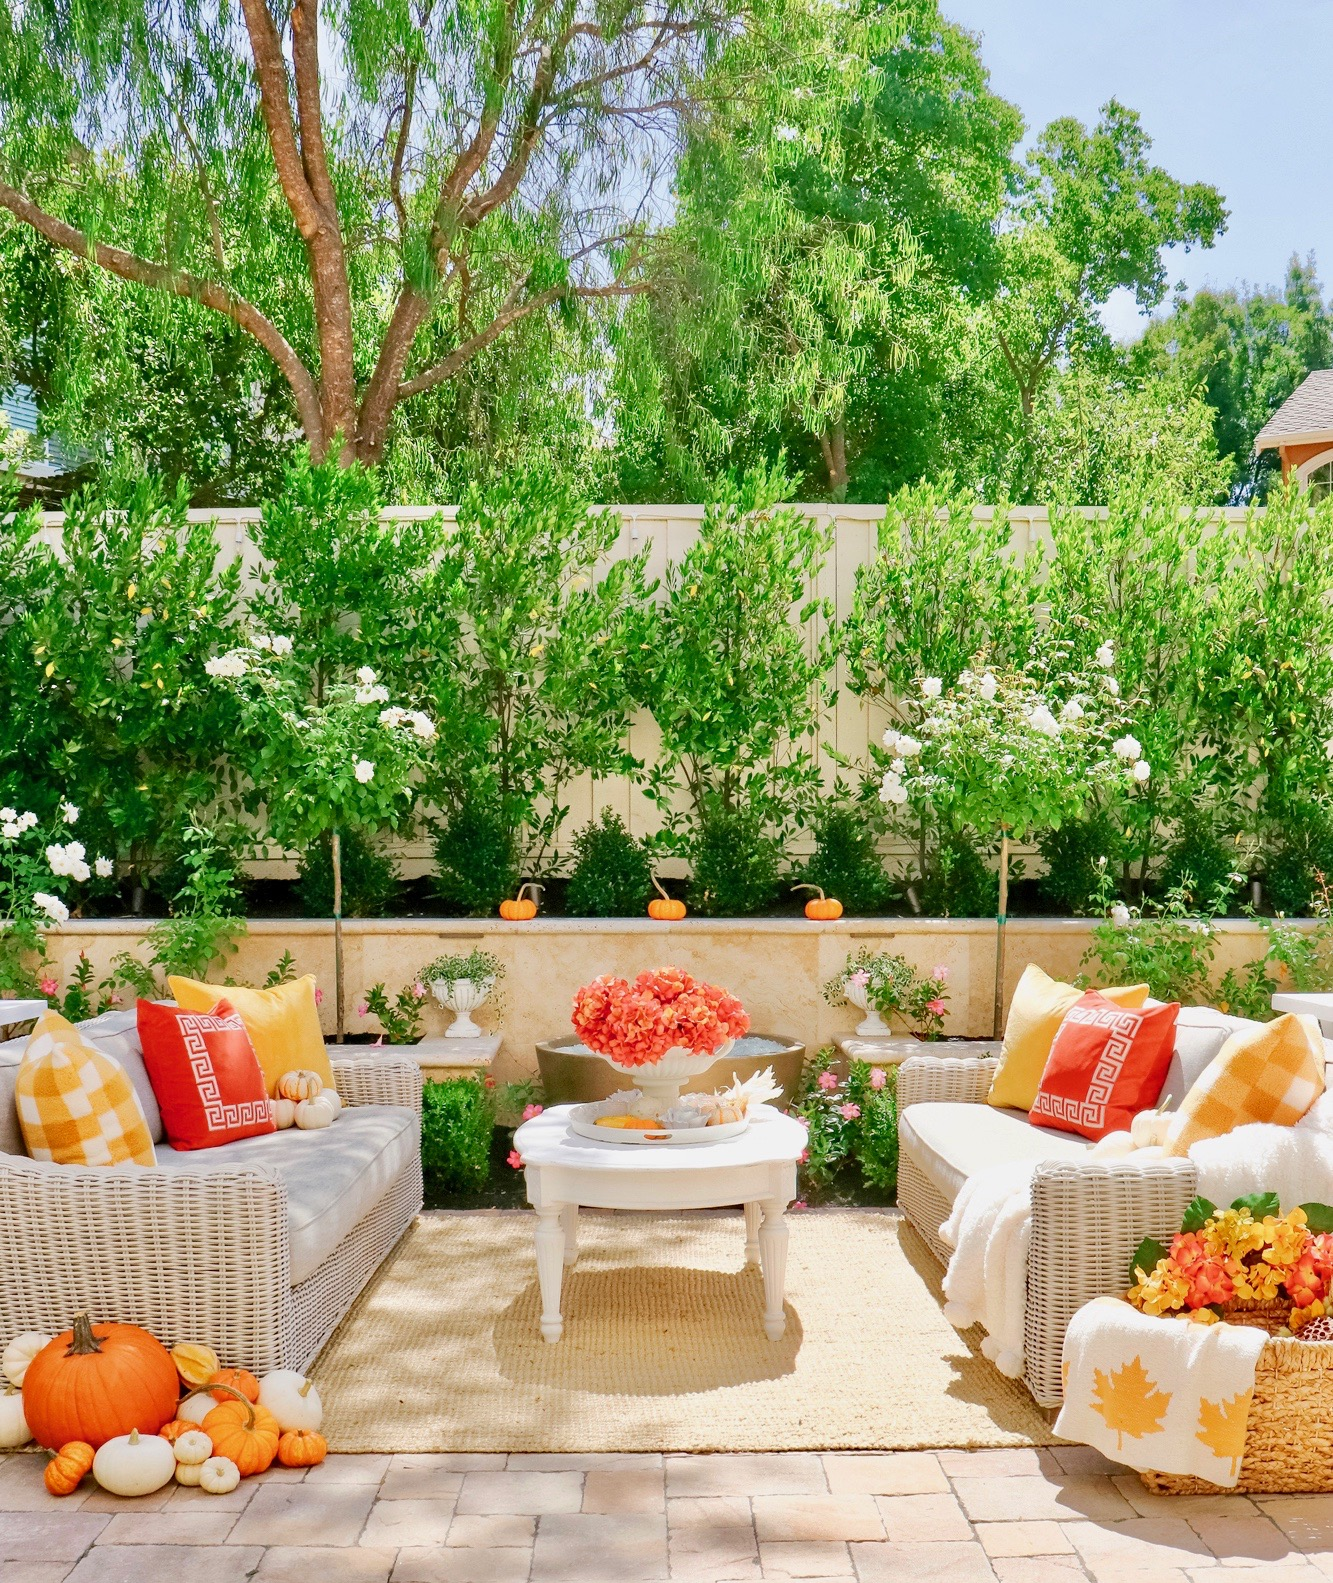 fall harvest decorations outdoors colorful fall outdoor inspiration   decor kristywicks com  fall outdoor inspiration   decor